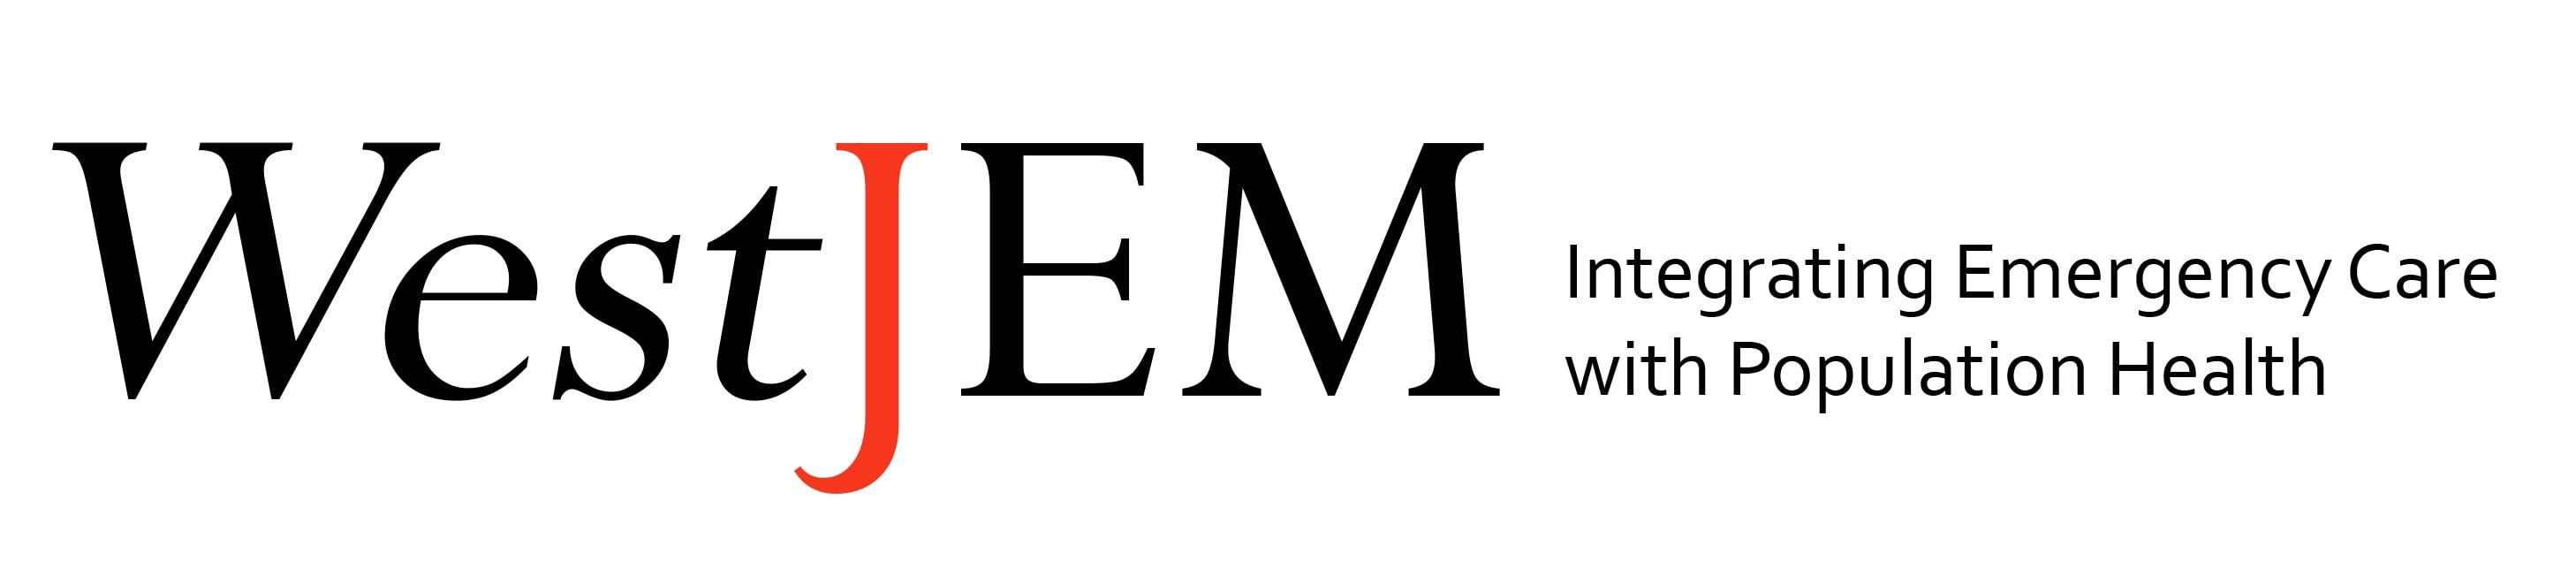 CME - The Western Journal of Emergency Medicine